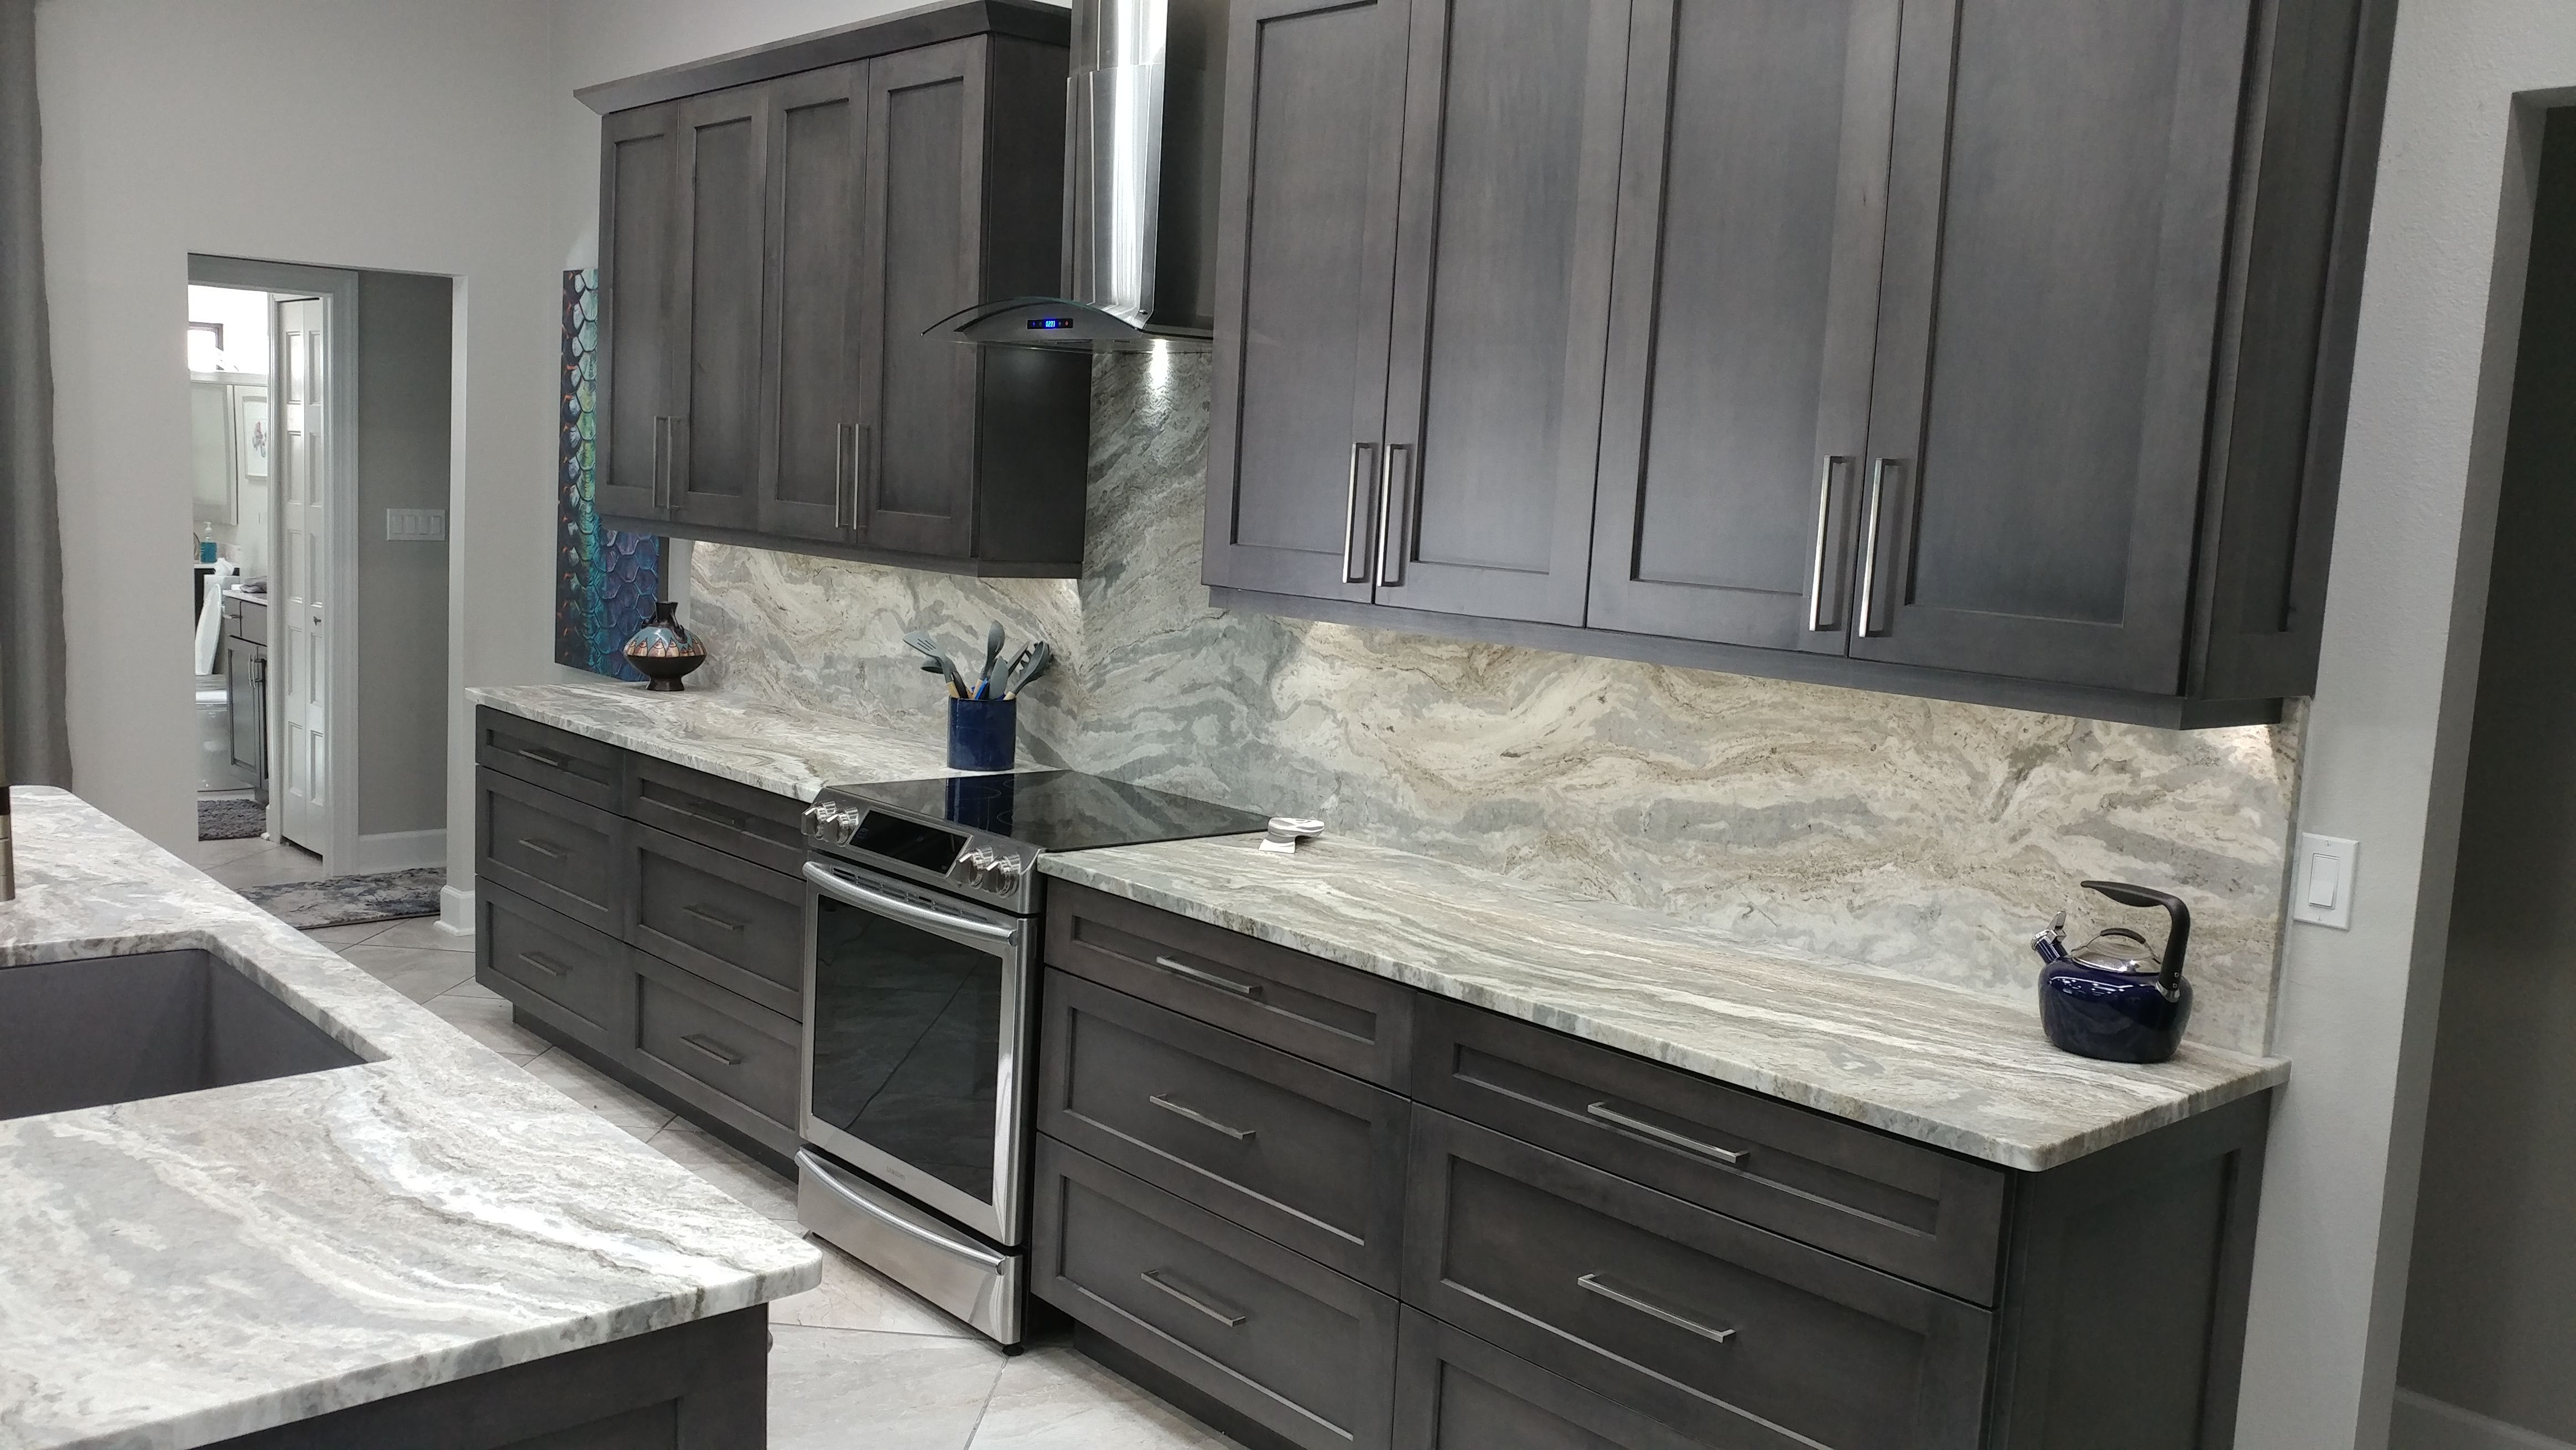 From This Angle You Can Appreciate The Hand Rubbed Slate Finish On The Shaker Euro Style Cabinets By Eudora And Stunning F Cabinet Styles Slate Kitchen Cabinet